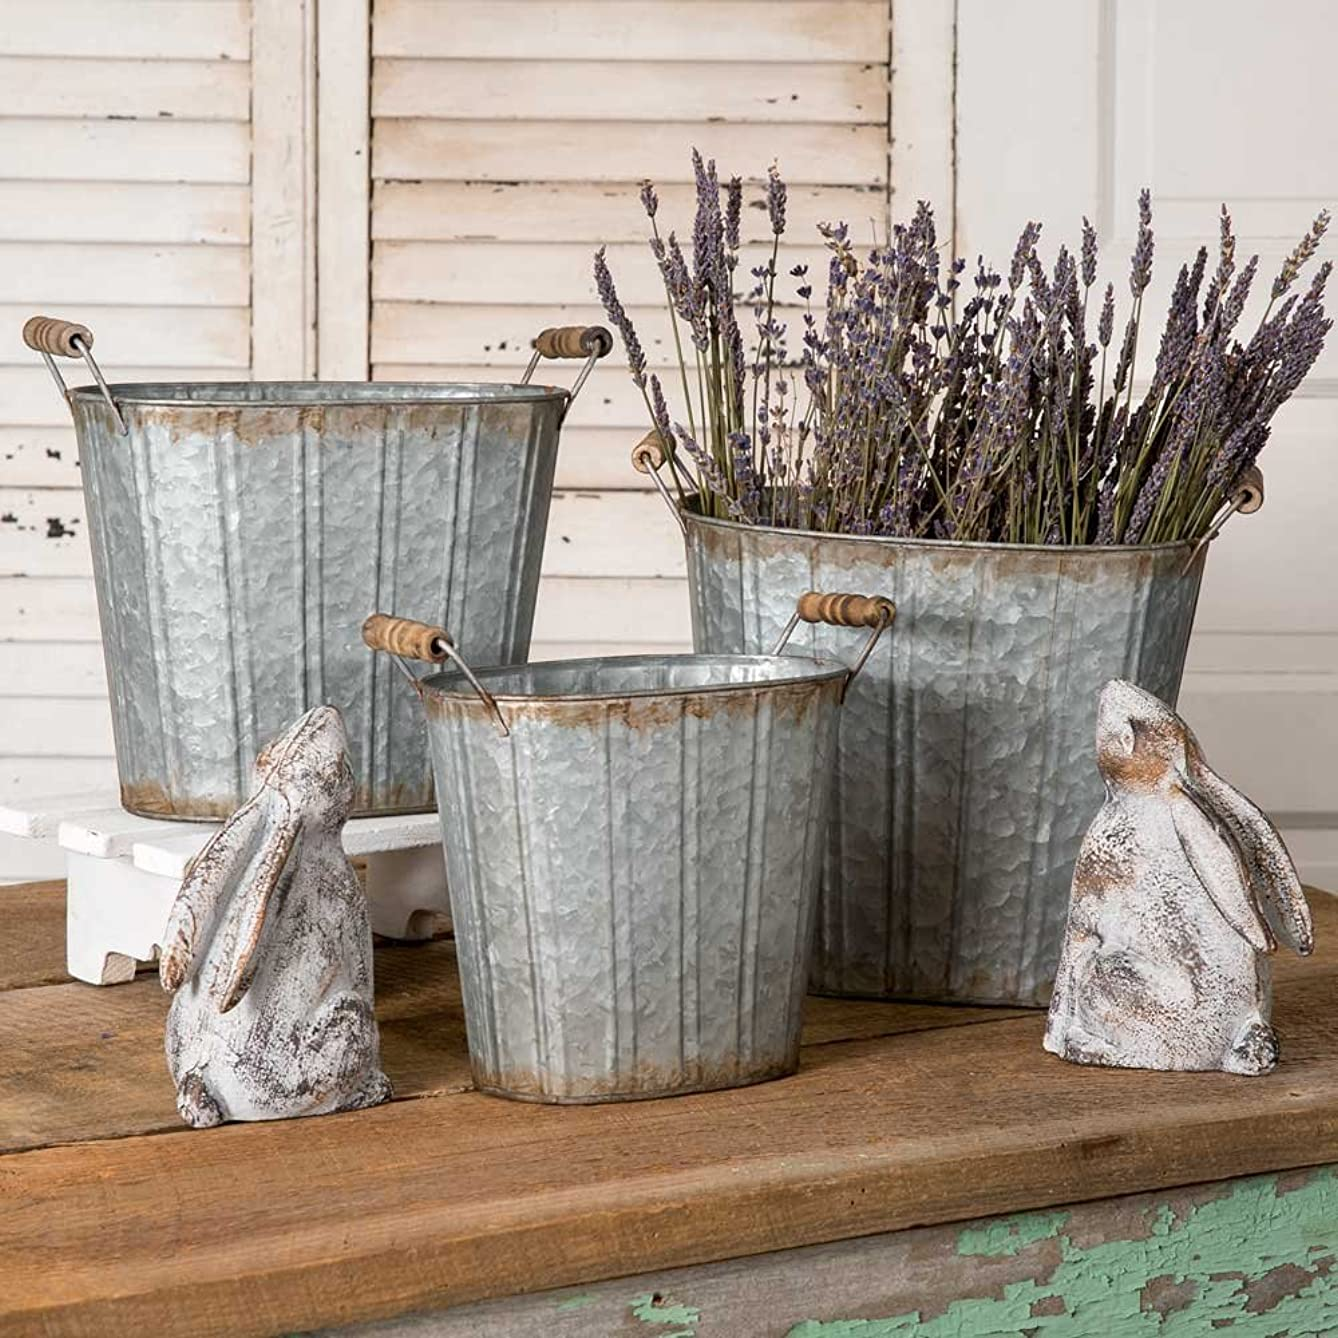 Set of 3 Tapered Galvanized Pails w/ Wooden Handles